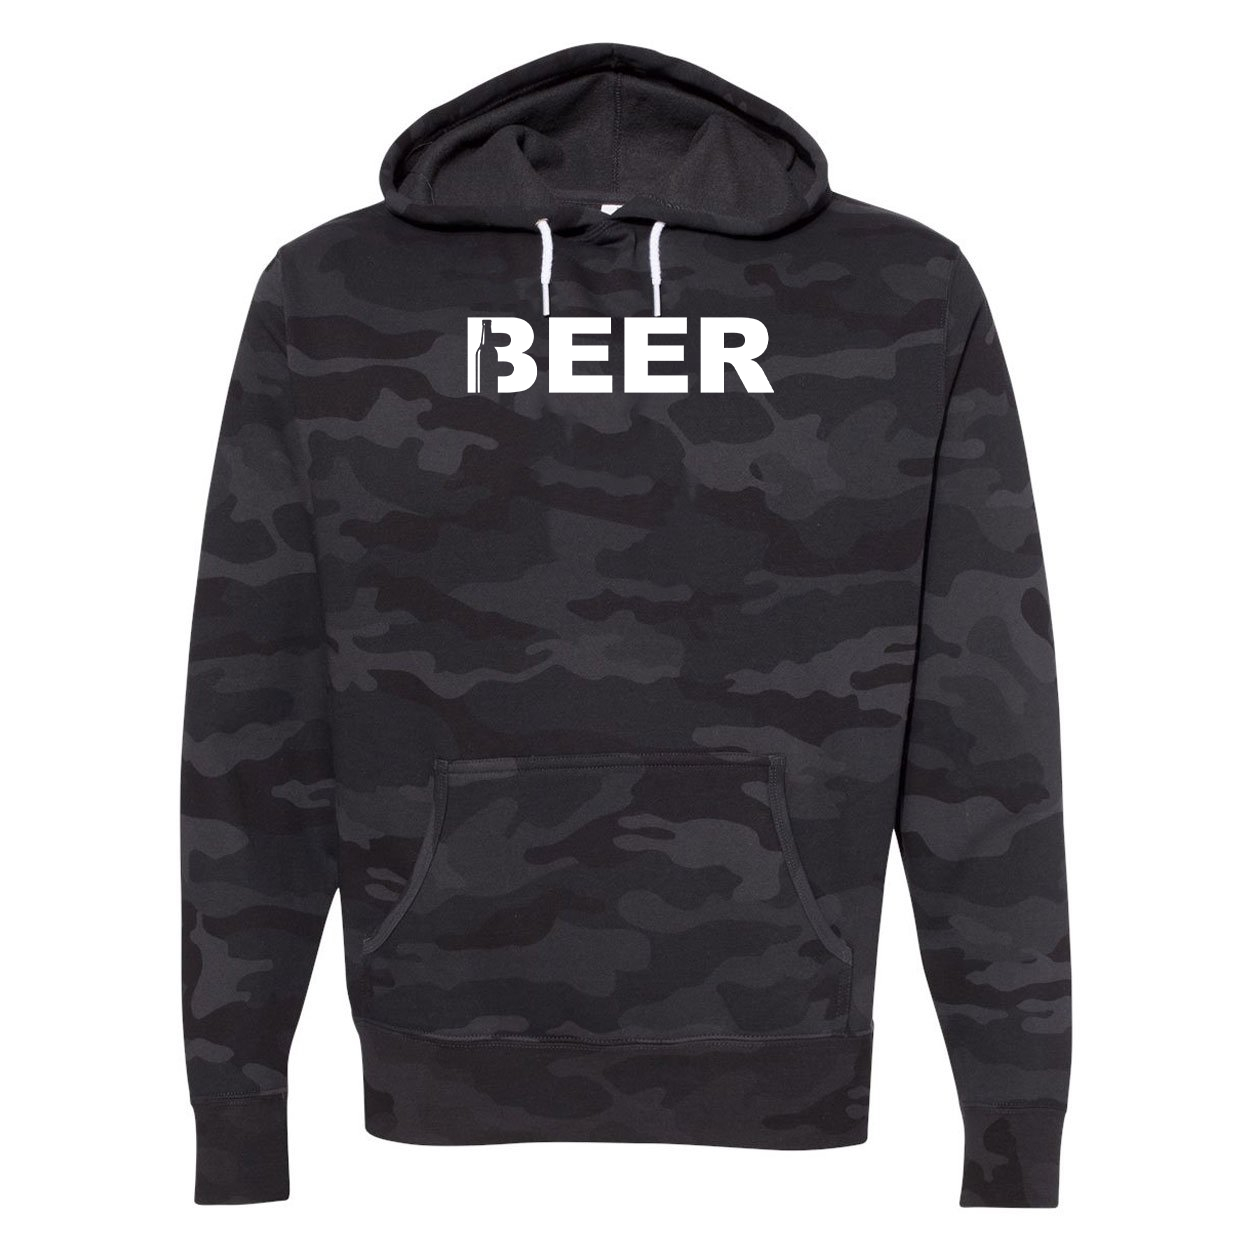 Beer Bottle Logo Classic Unisex Hooded Sweatshirt Black Camo (White Logo)